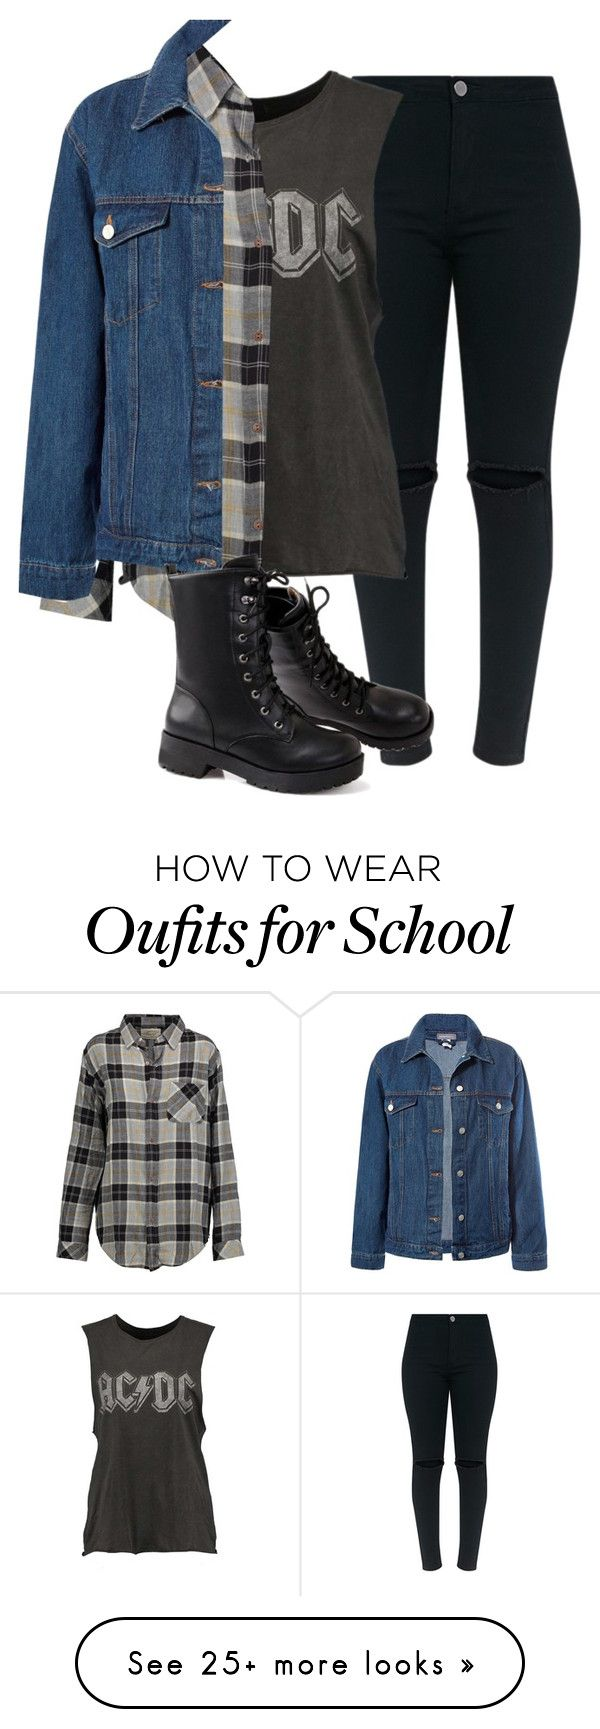 """""""Runaway"""" by witch-16 on Polyvore featuring Current/Elliott, Sans Souci, black, tumblr, rocker and polyvorefashion"""